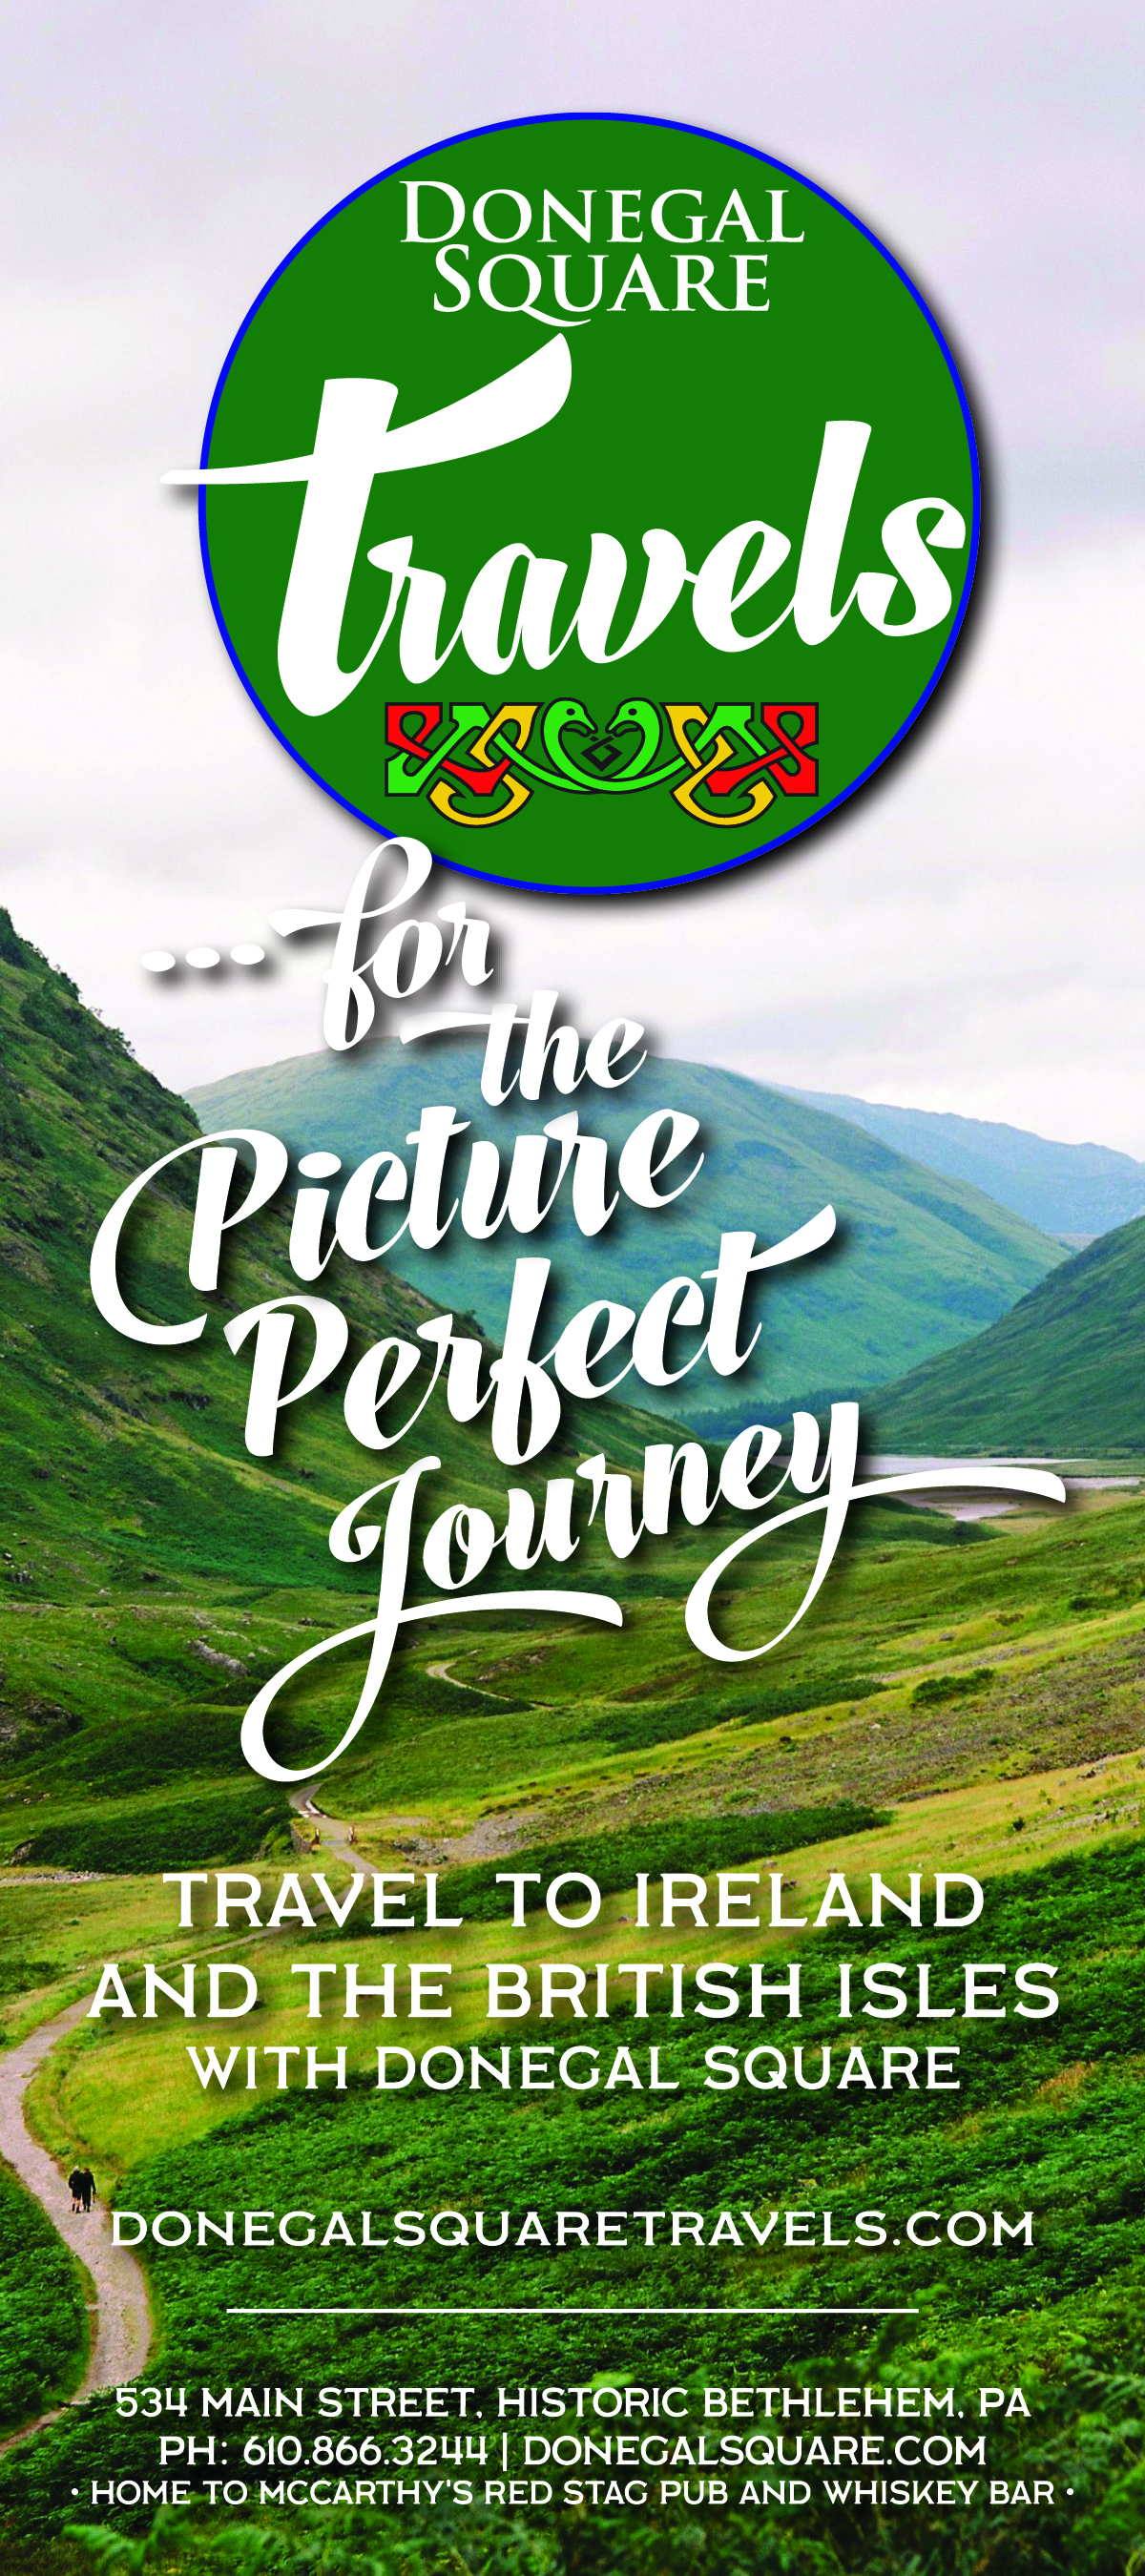 """PICTURE PERFECT JOURNEY • 4x9"""" ADVERTISEMENT   CLIENT: DONEGAL SQUARE TRAVELS • BETHLEHEM, PA BRIEF: Appeal to photographers, Push tours offered by Donegal Square PLACEMENT: Artsquest, InVision Photography Festival Program Book WORK: Copywriting and layout through Adobe InDesign"""